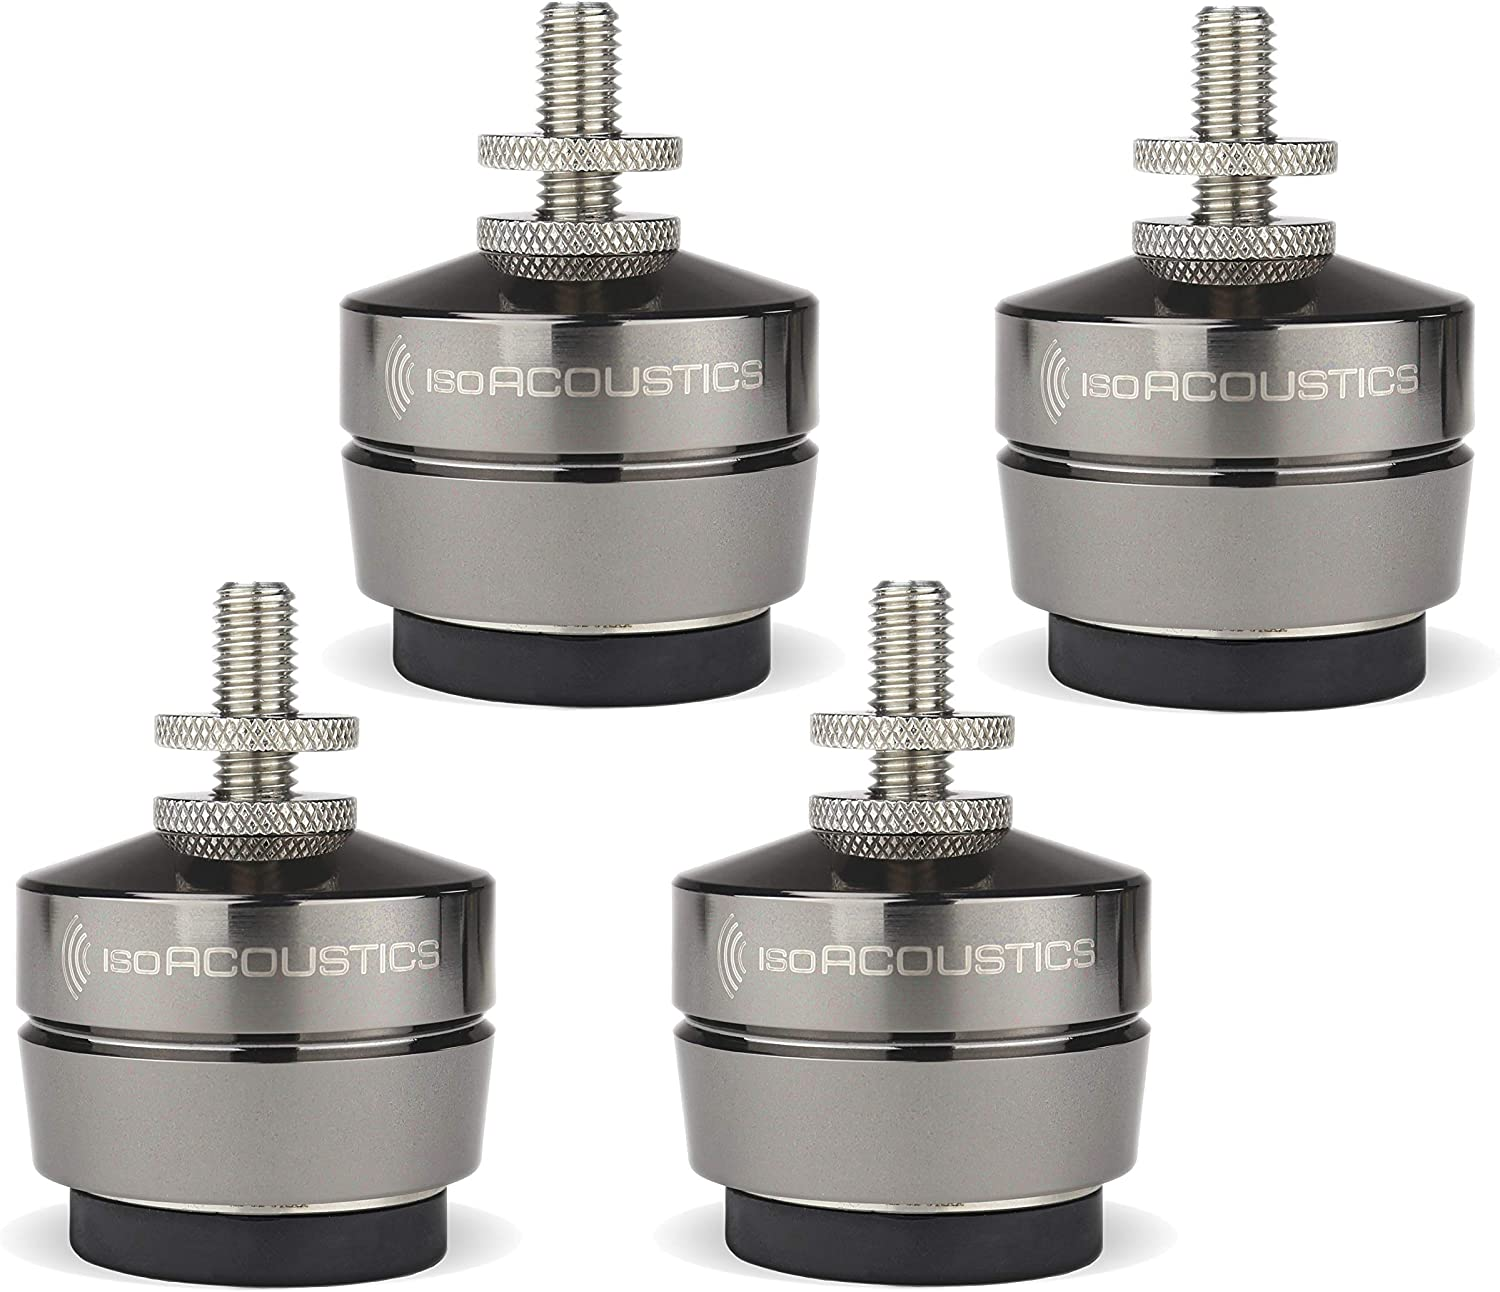 IsoAcoustics Gaia Series Isolation Feet for Speakers & Subwoofers (Gaia III, 70 lb max) – Set of 4